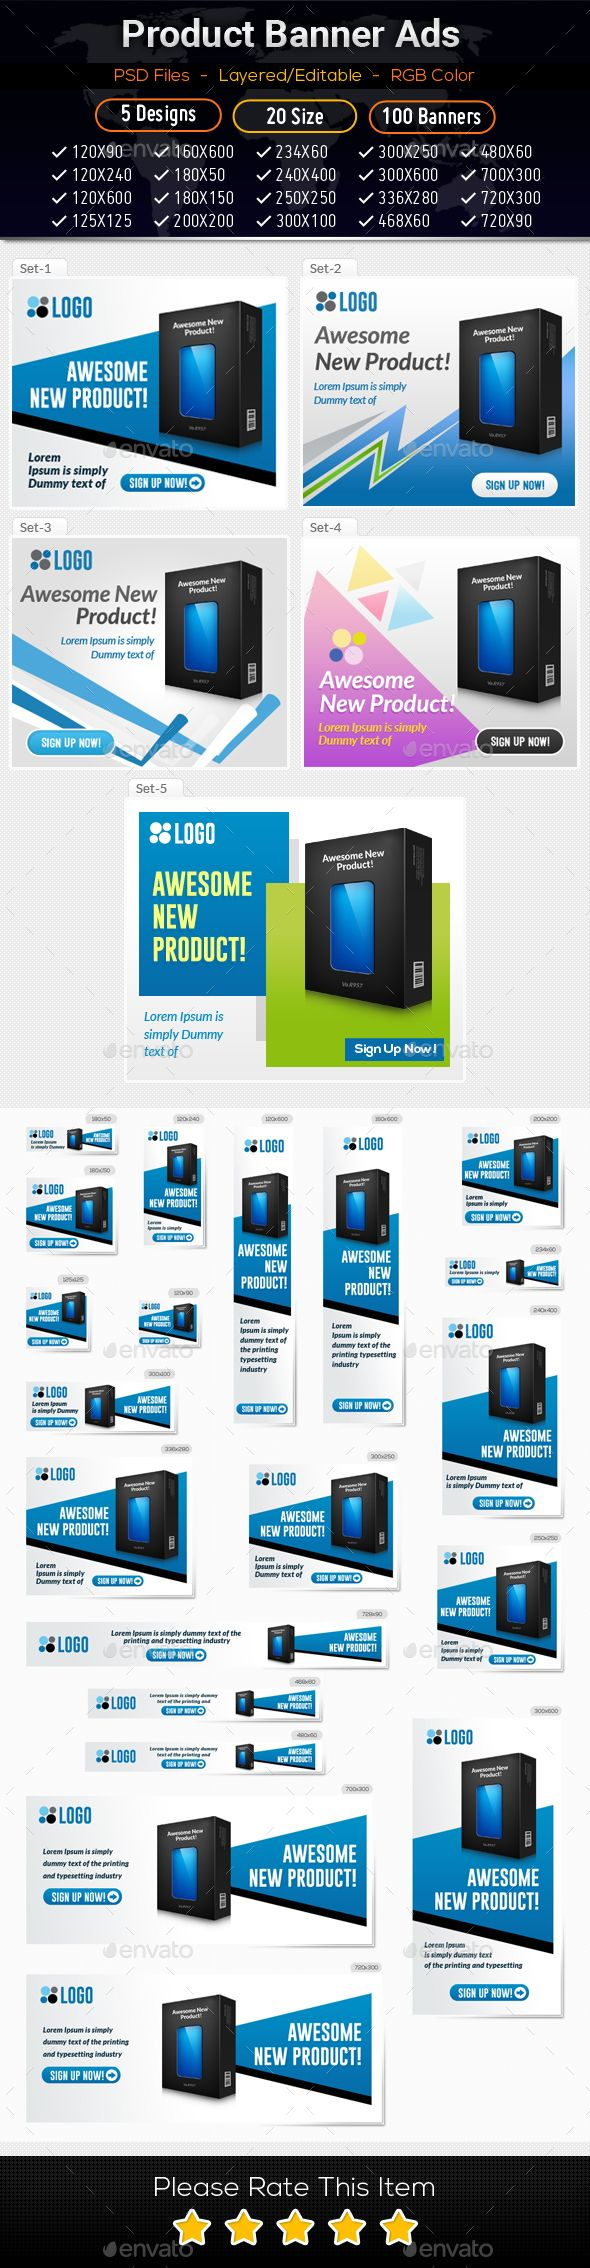 Product Ad Banners Pinterest Banners Ads And Banner Template - Product ad template